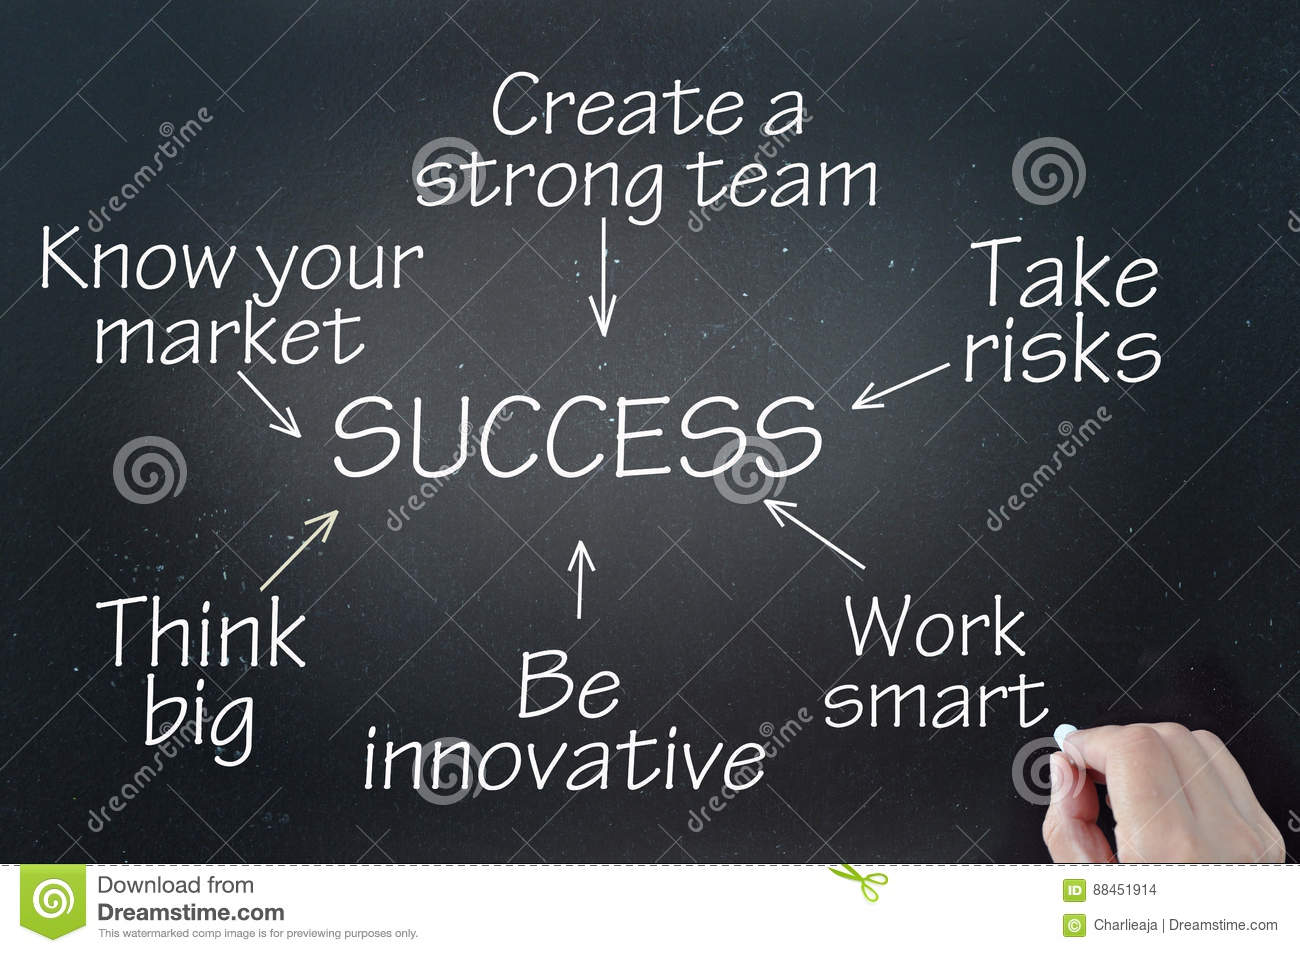 Key to success flow chart stock photo image of diagram 88451914 download key to success flow chart stock photo image of diagram 88451914 ccuart Choice Image